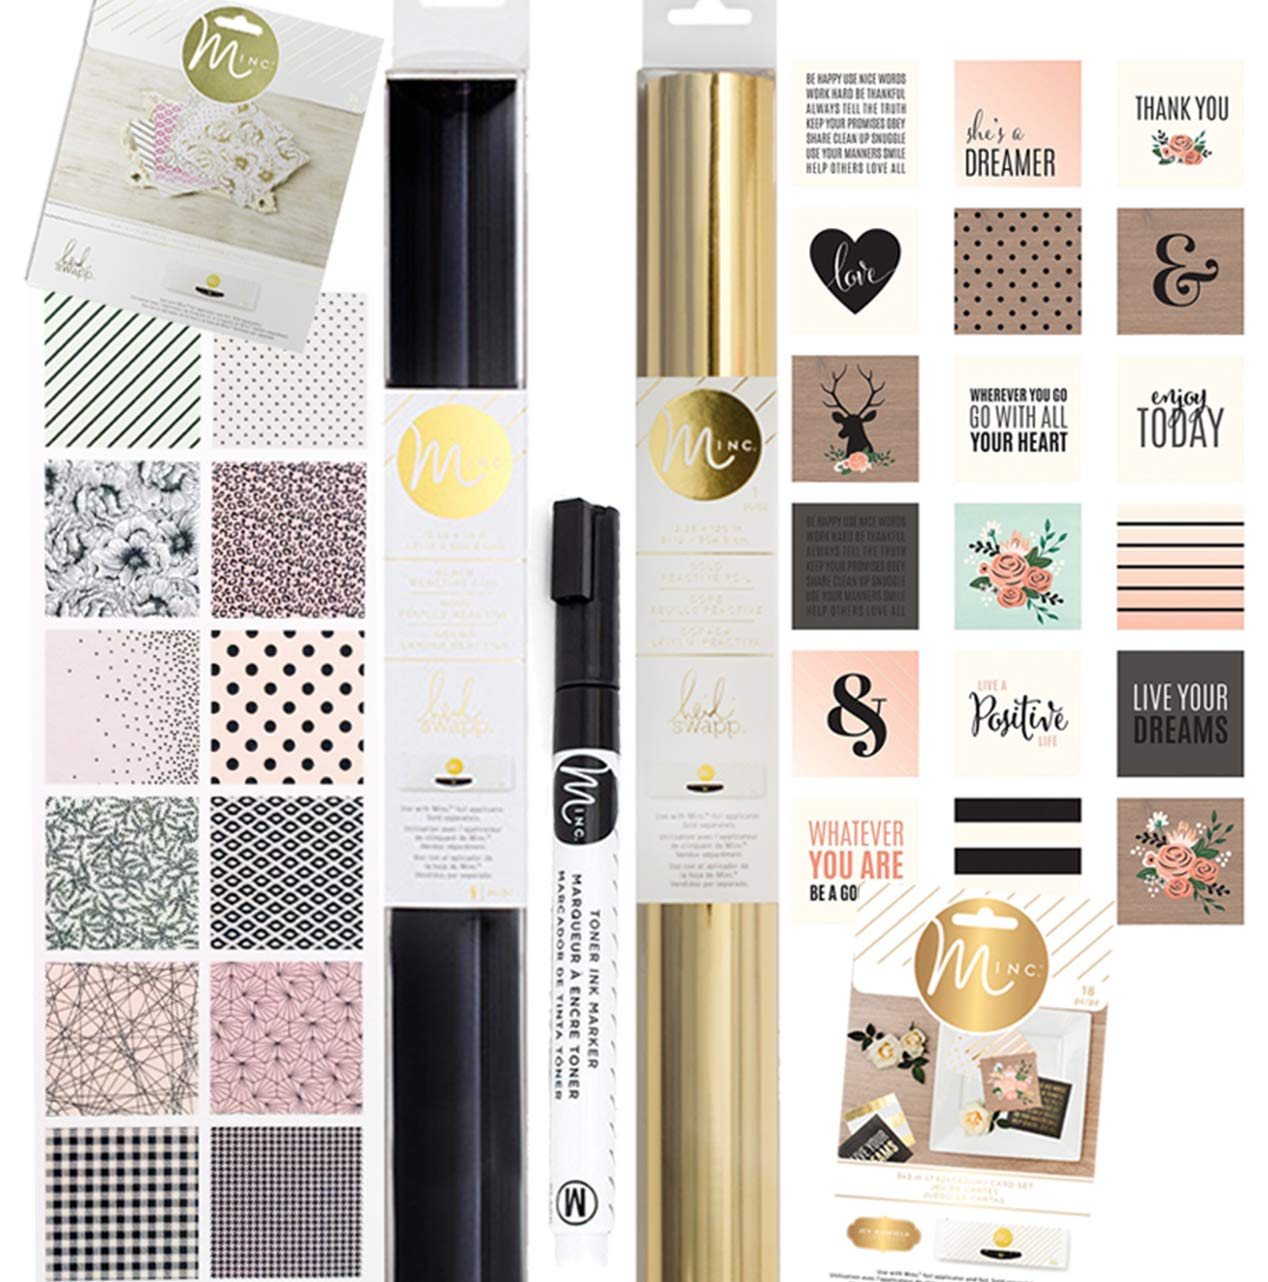 Heidi Swapp Minc Foil Accessories Bundle (5) with Black and Gold foil, Graphic Card Set, Toner Ink Pen, Patterned Paper Set